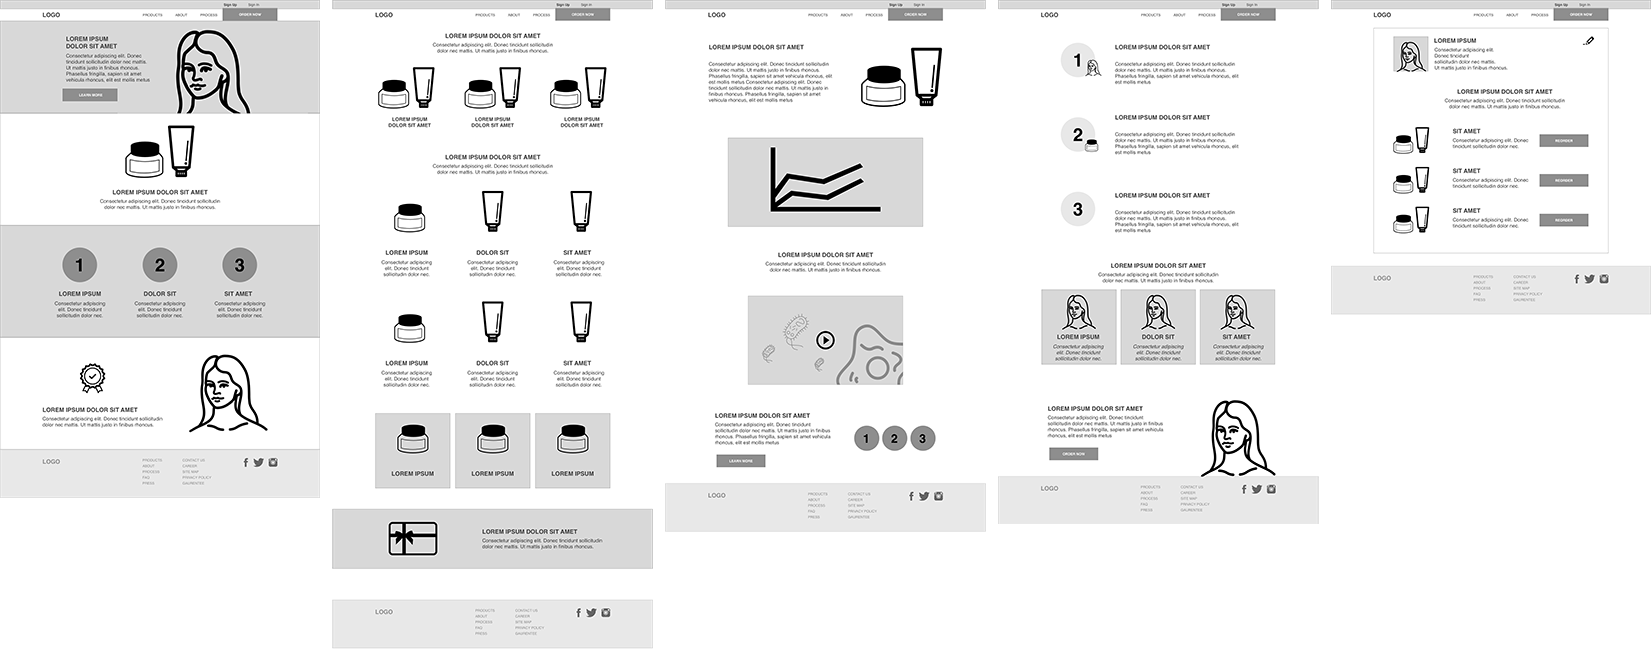 wireframes.png